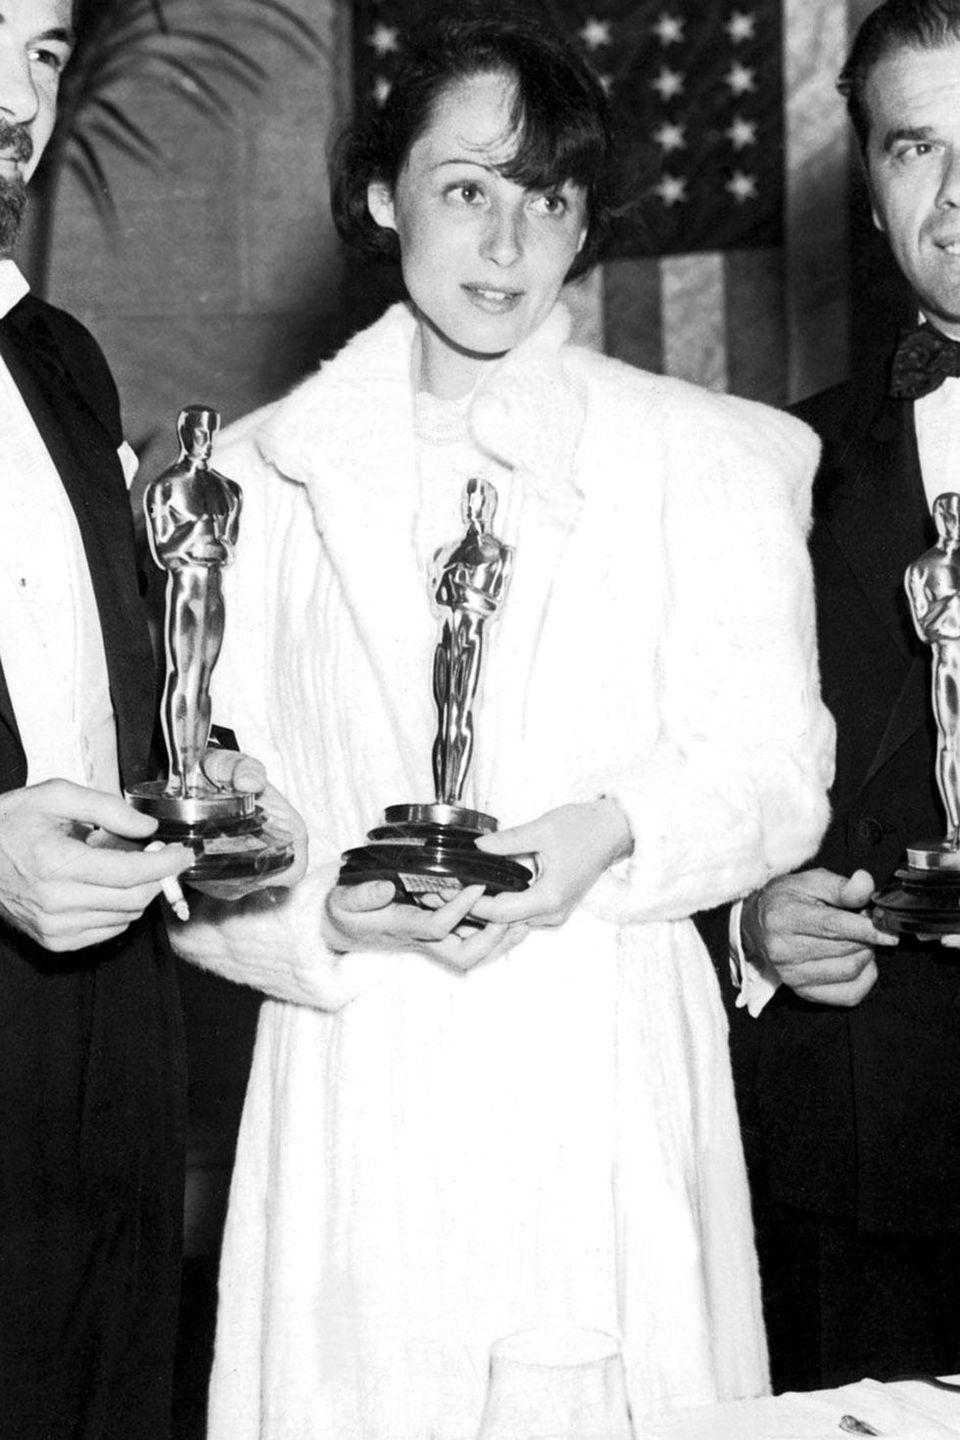 <p>And here she is with her first Oscar win in a fabulous, long white coat. She won Best Actress for her performance in <em>The Great Ziegfeld</em>. </p>